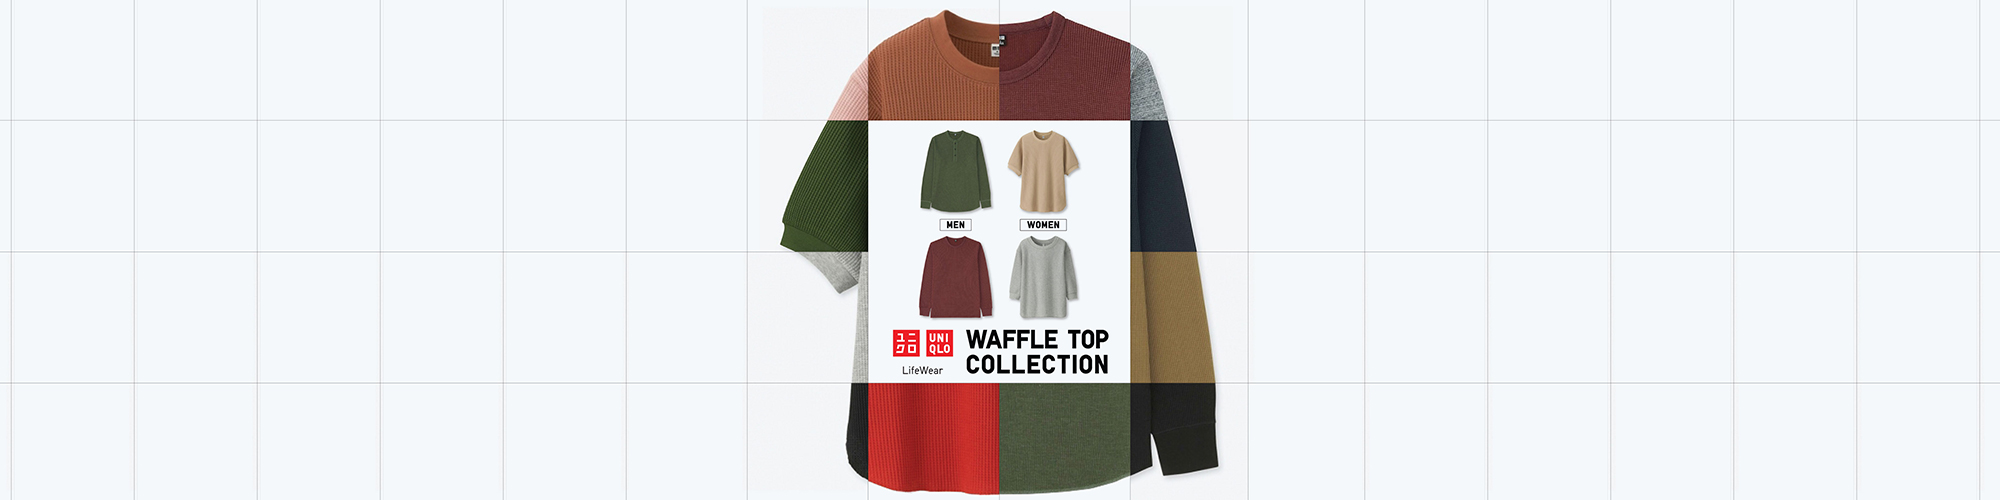 km_website_slider_uniqlo_240718